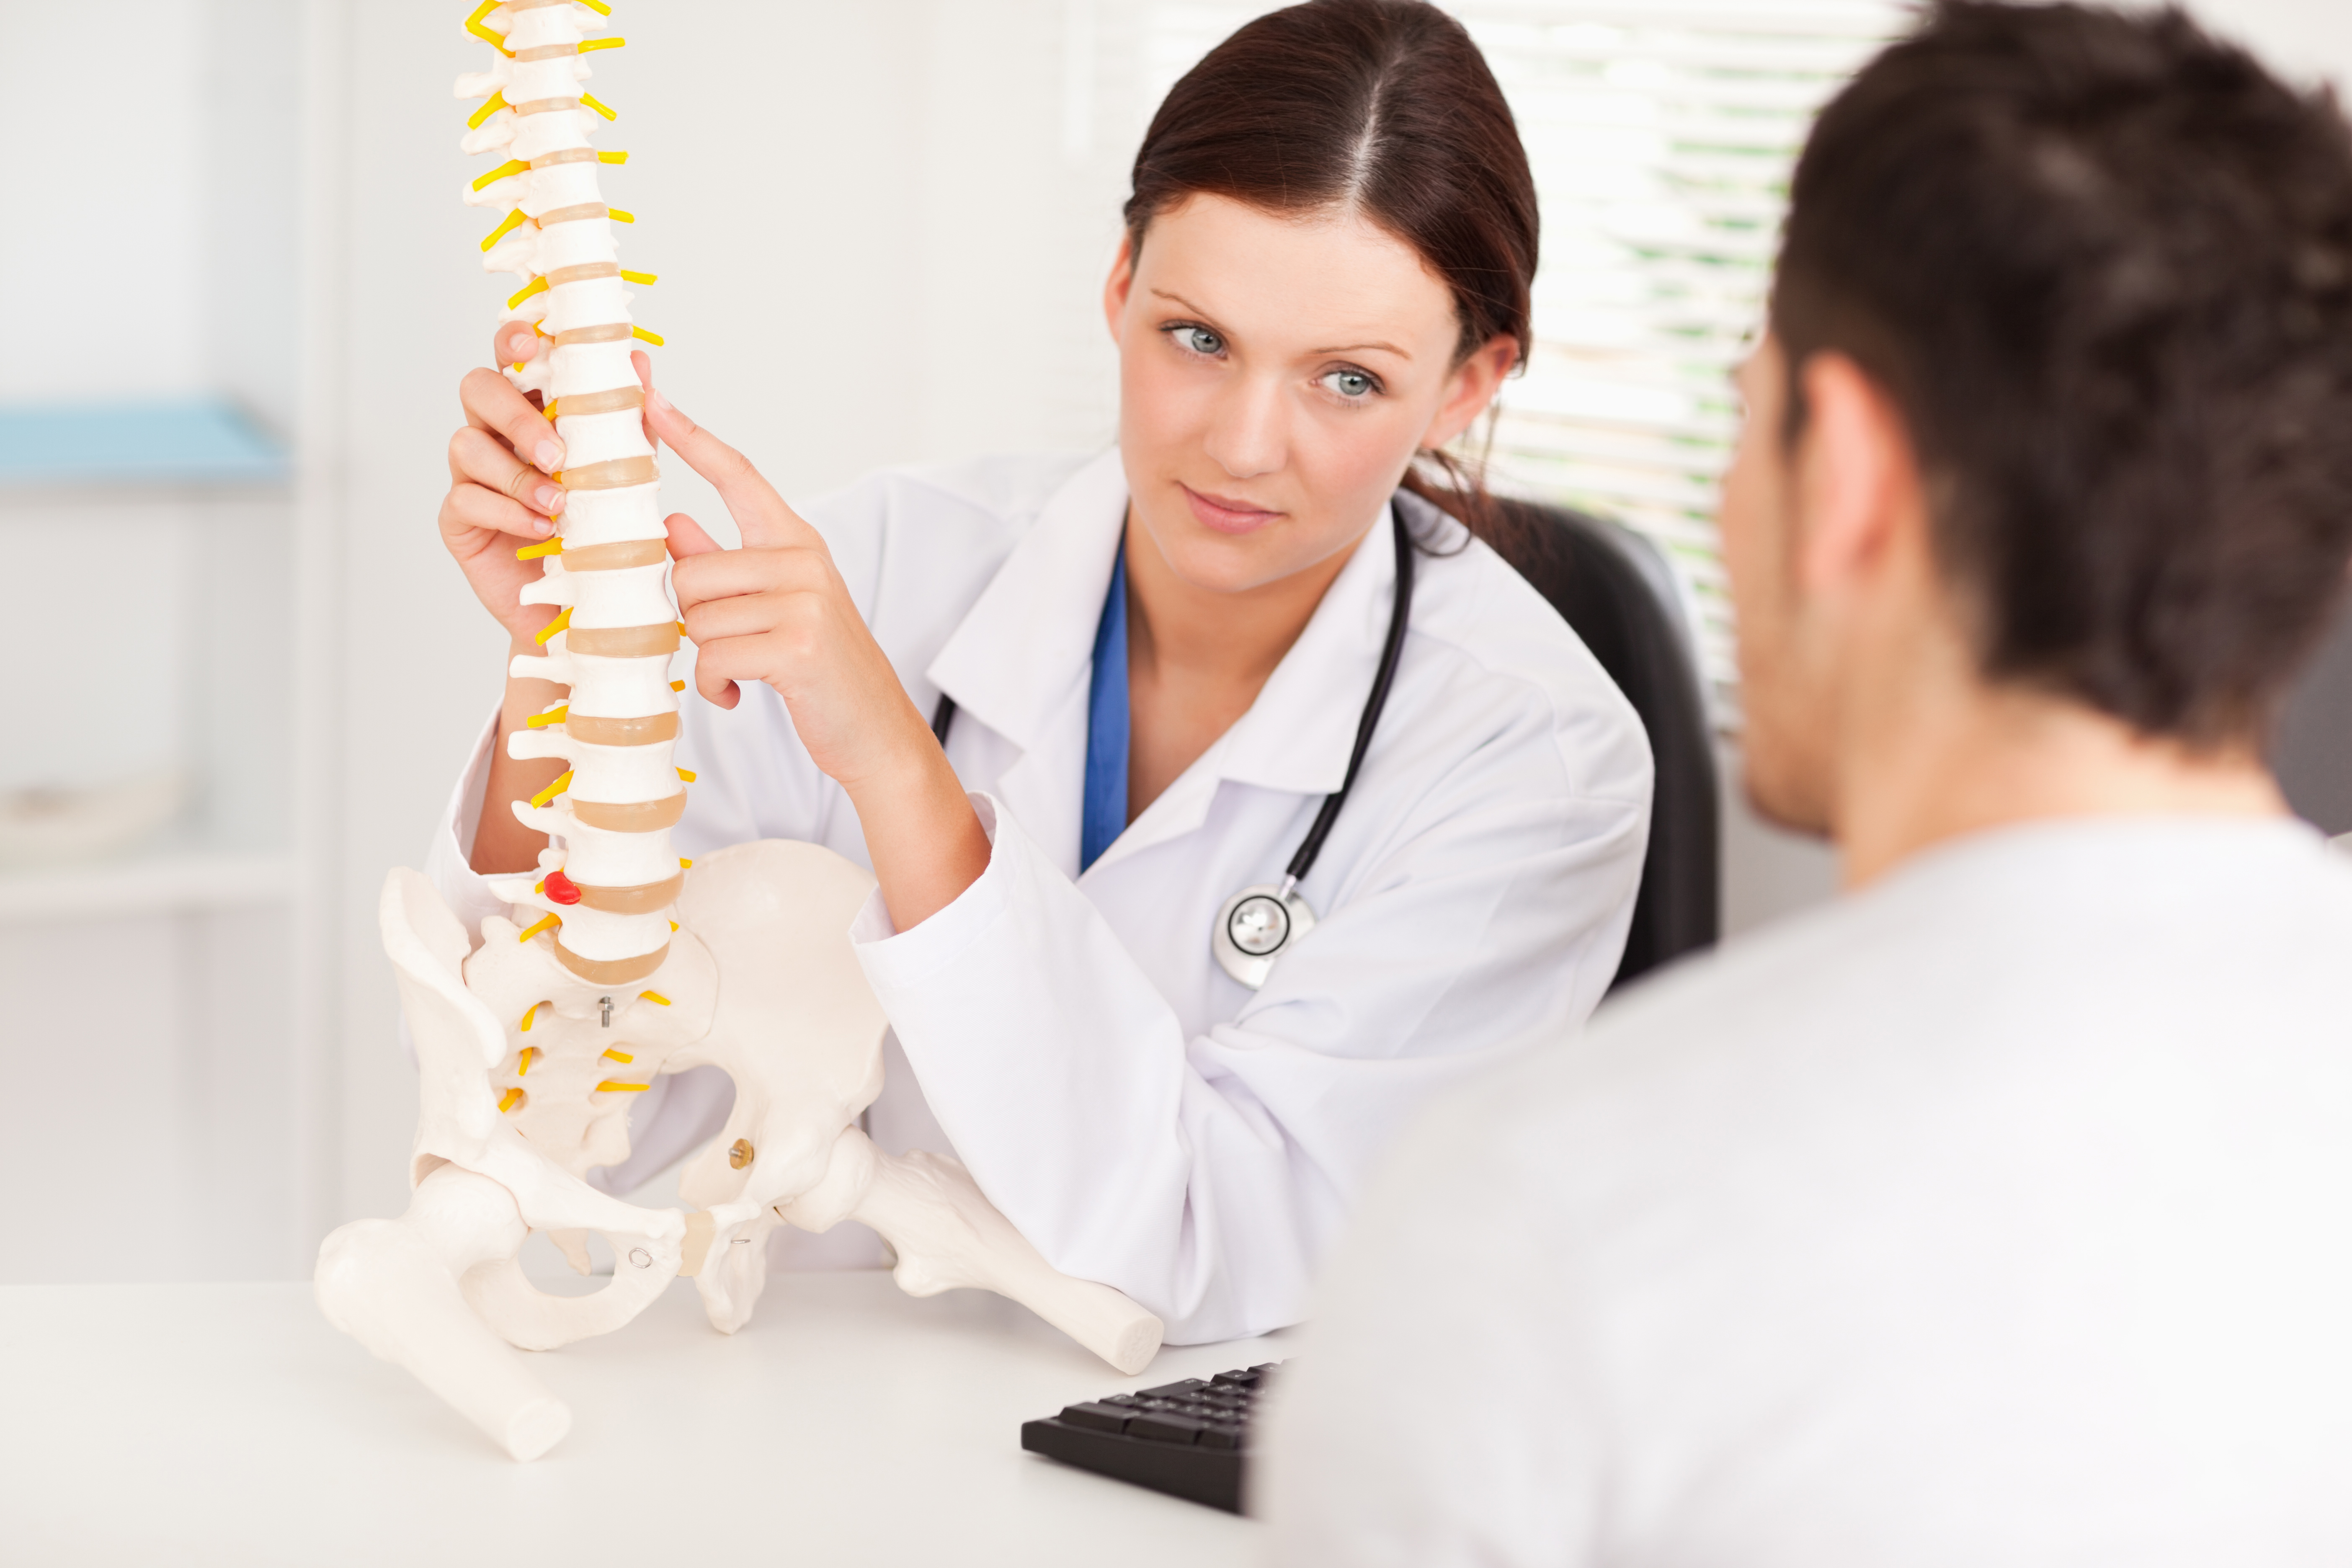 services with our personal injury chiropractor in Smyrna